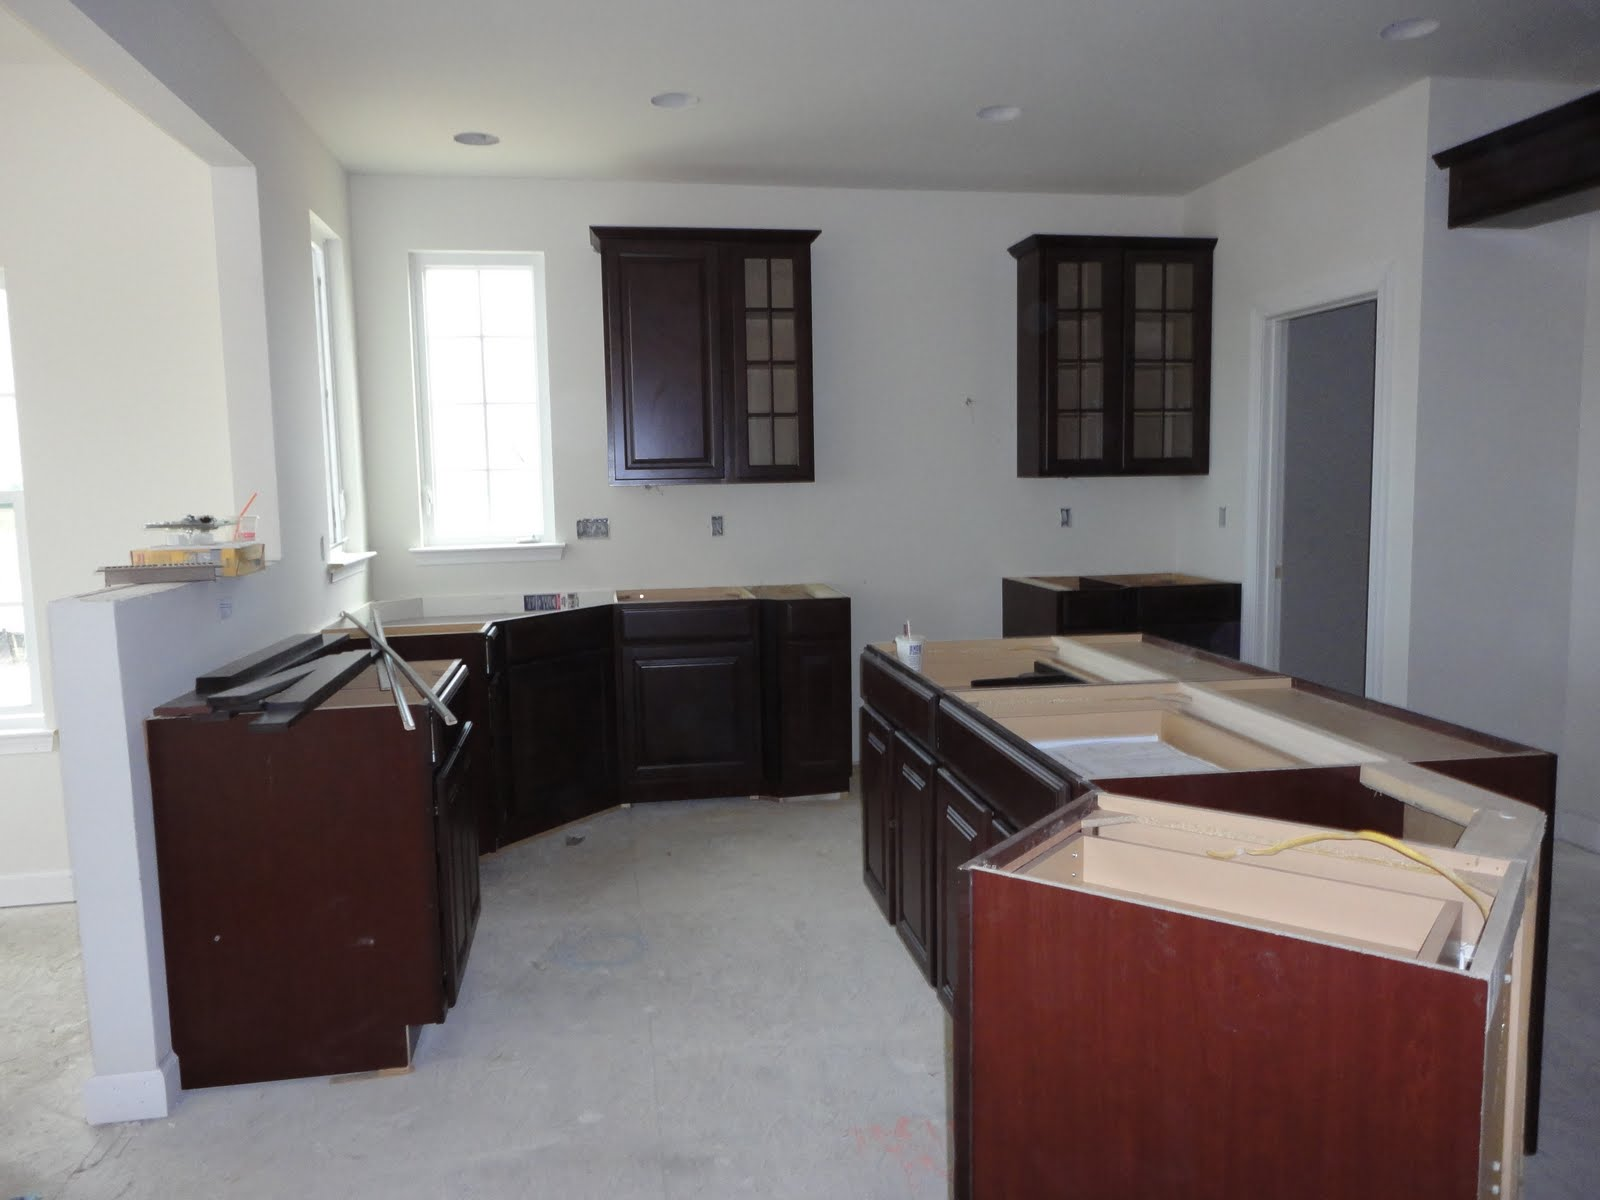 Building a ryan homes avalon wow for Avalon kitchen cabinets